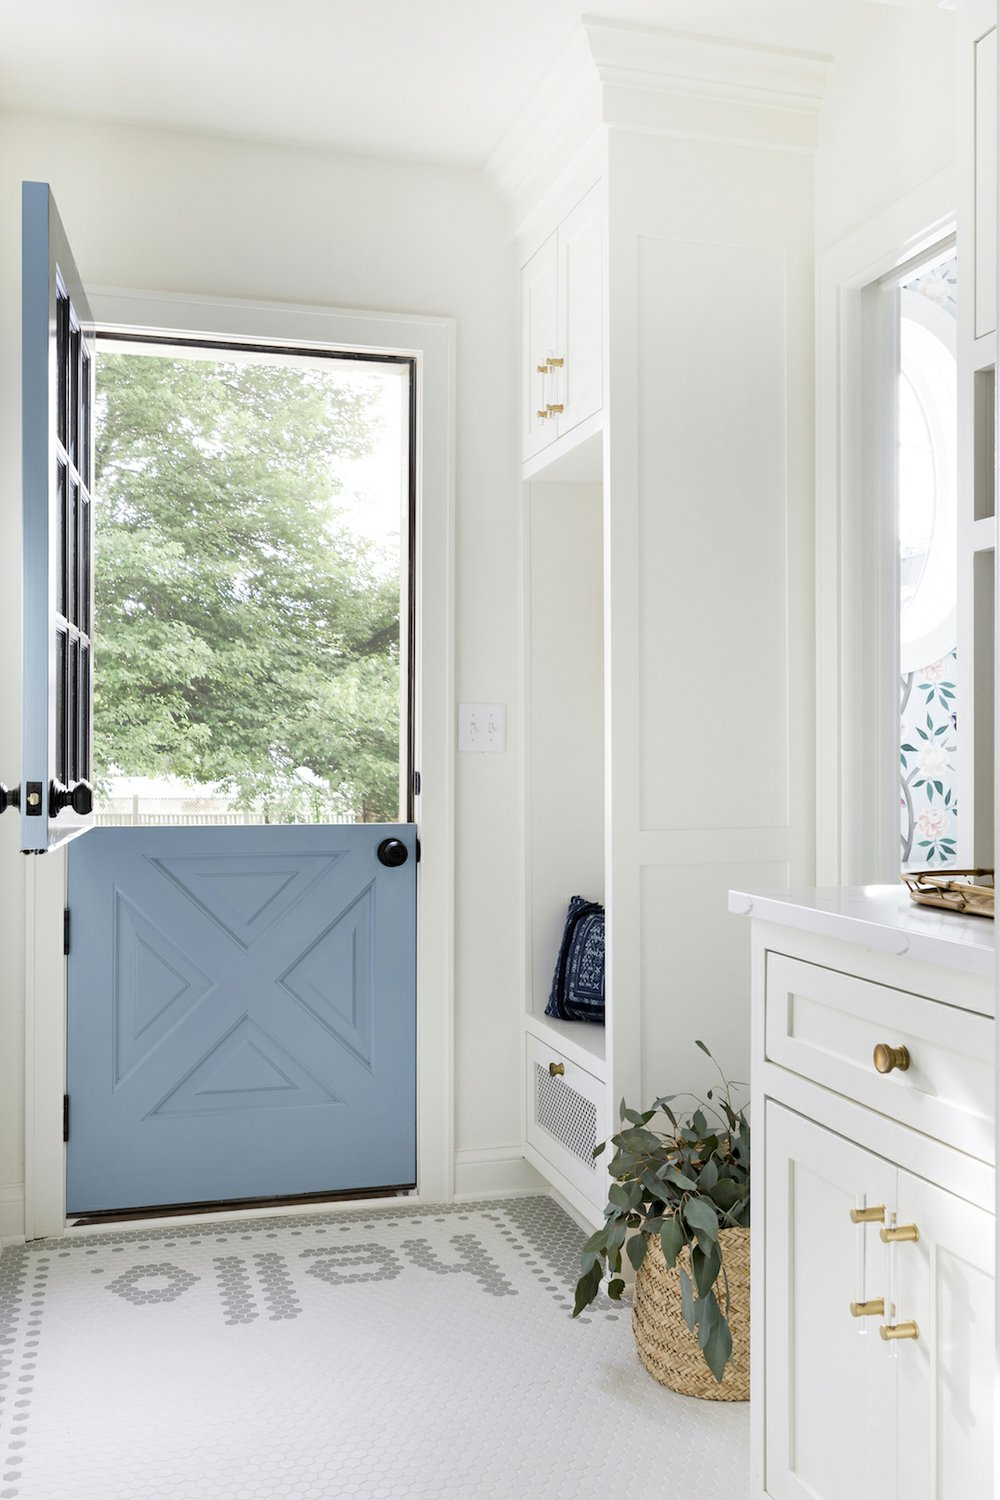 """Designer Bria Hammel used hex tile to spell out """"Hello"""" in an entryway. A custom border extends to the adjacent powder room. MUST CREDIT: Spacecrafting Photography"""